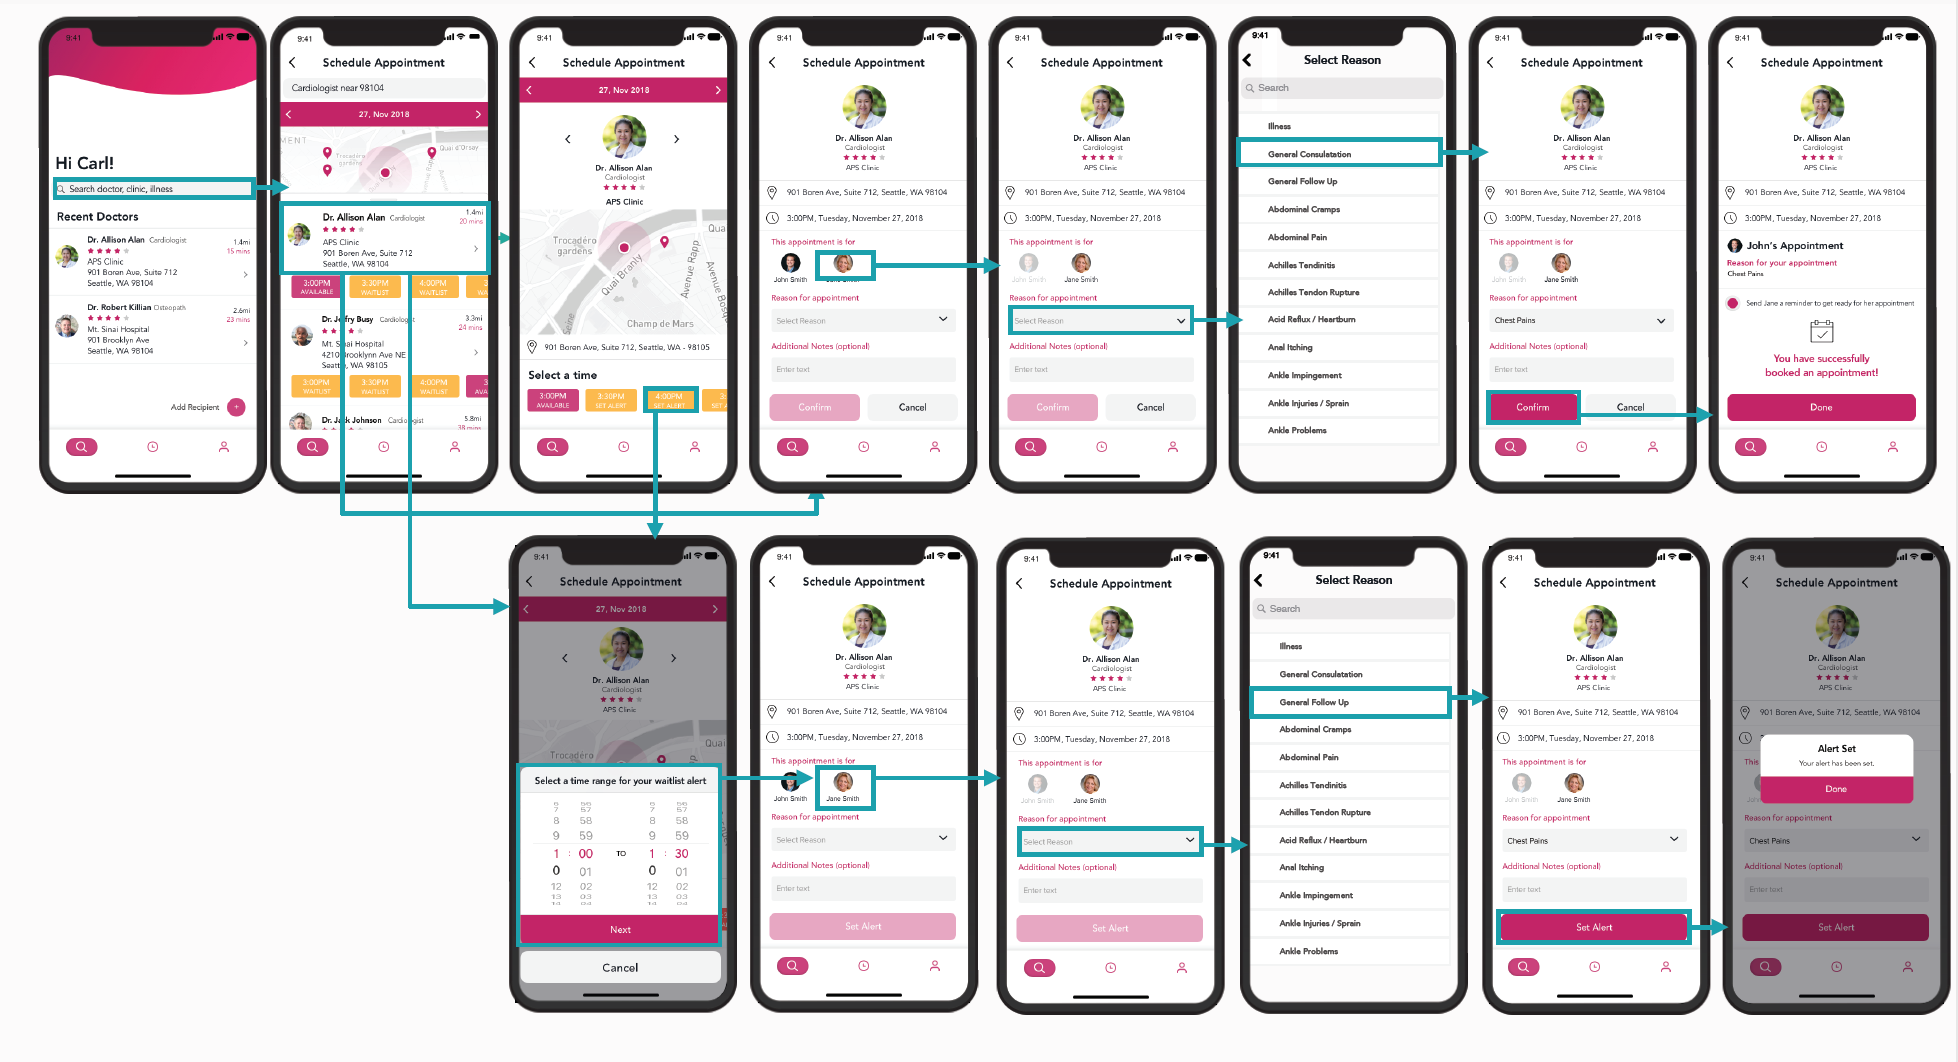 With Wexel, finding and booking an appointment is simple. User can identify the doctor or clinic where they would like to receive care and move through a short series of steps collecting pertinent information for the doctor up front and can be tailored to the user to get the right care.